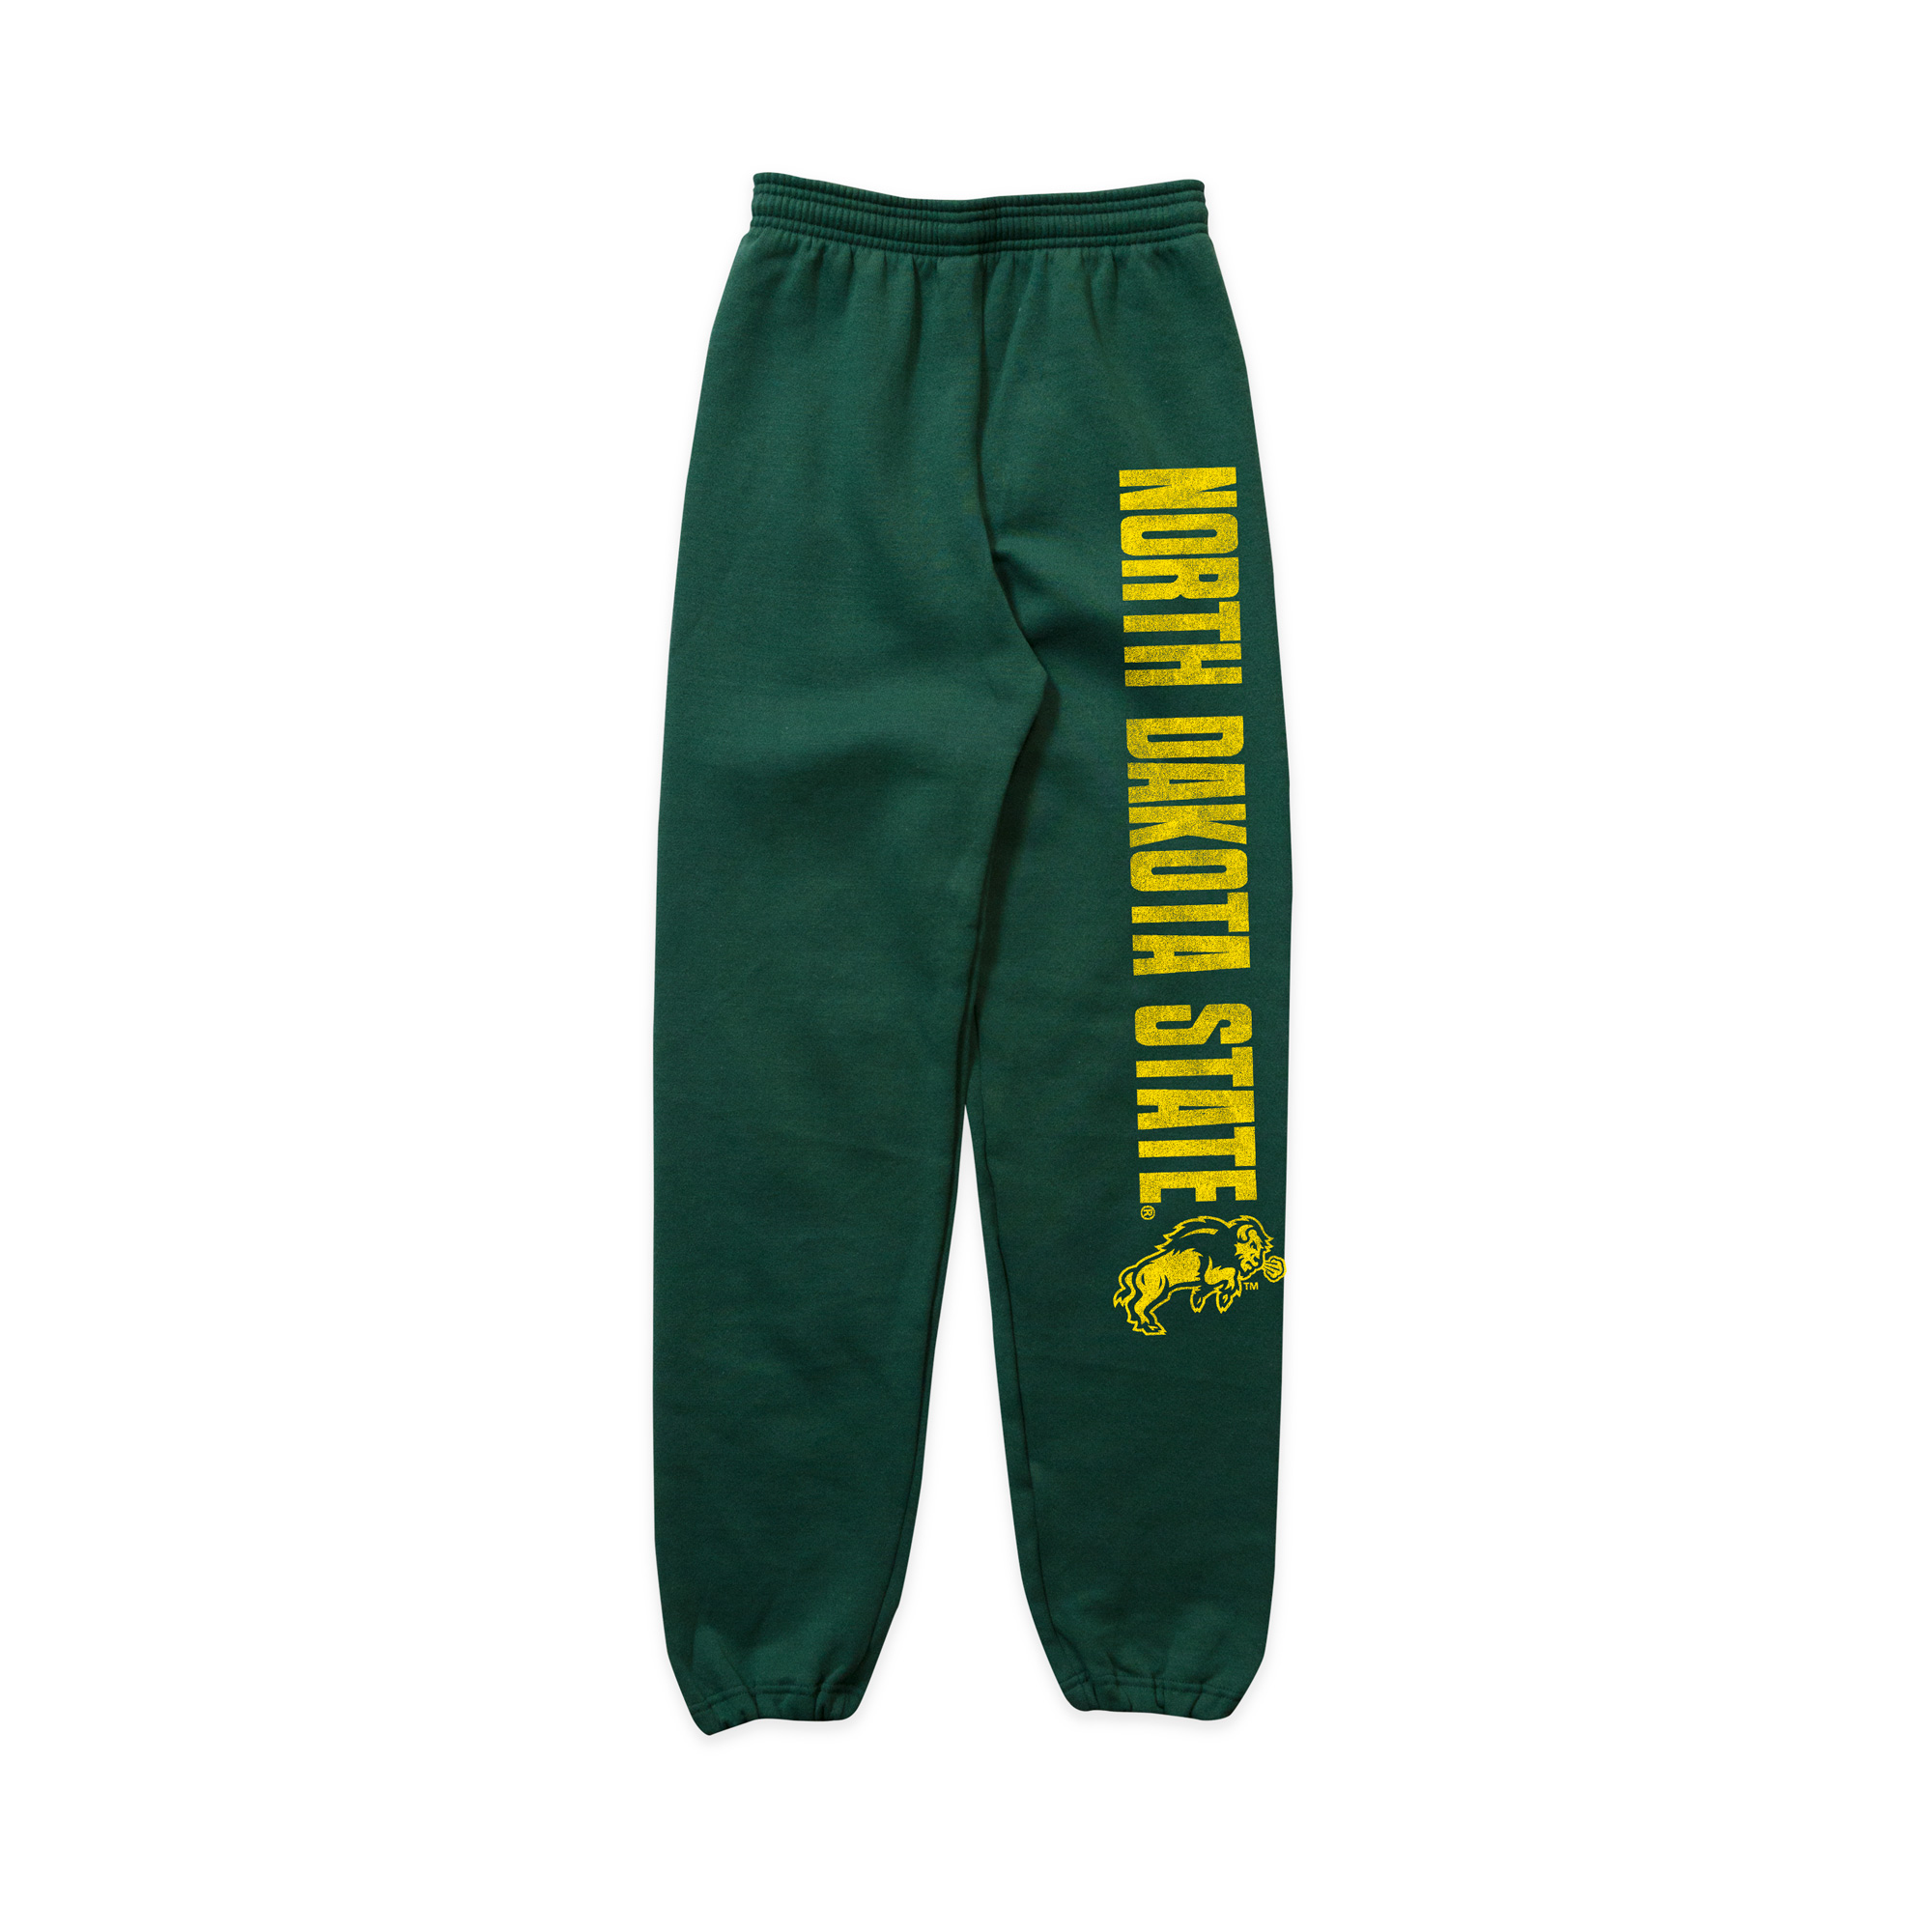 Sweatpant - Youth by MV Sport